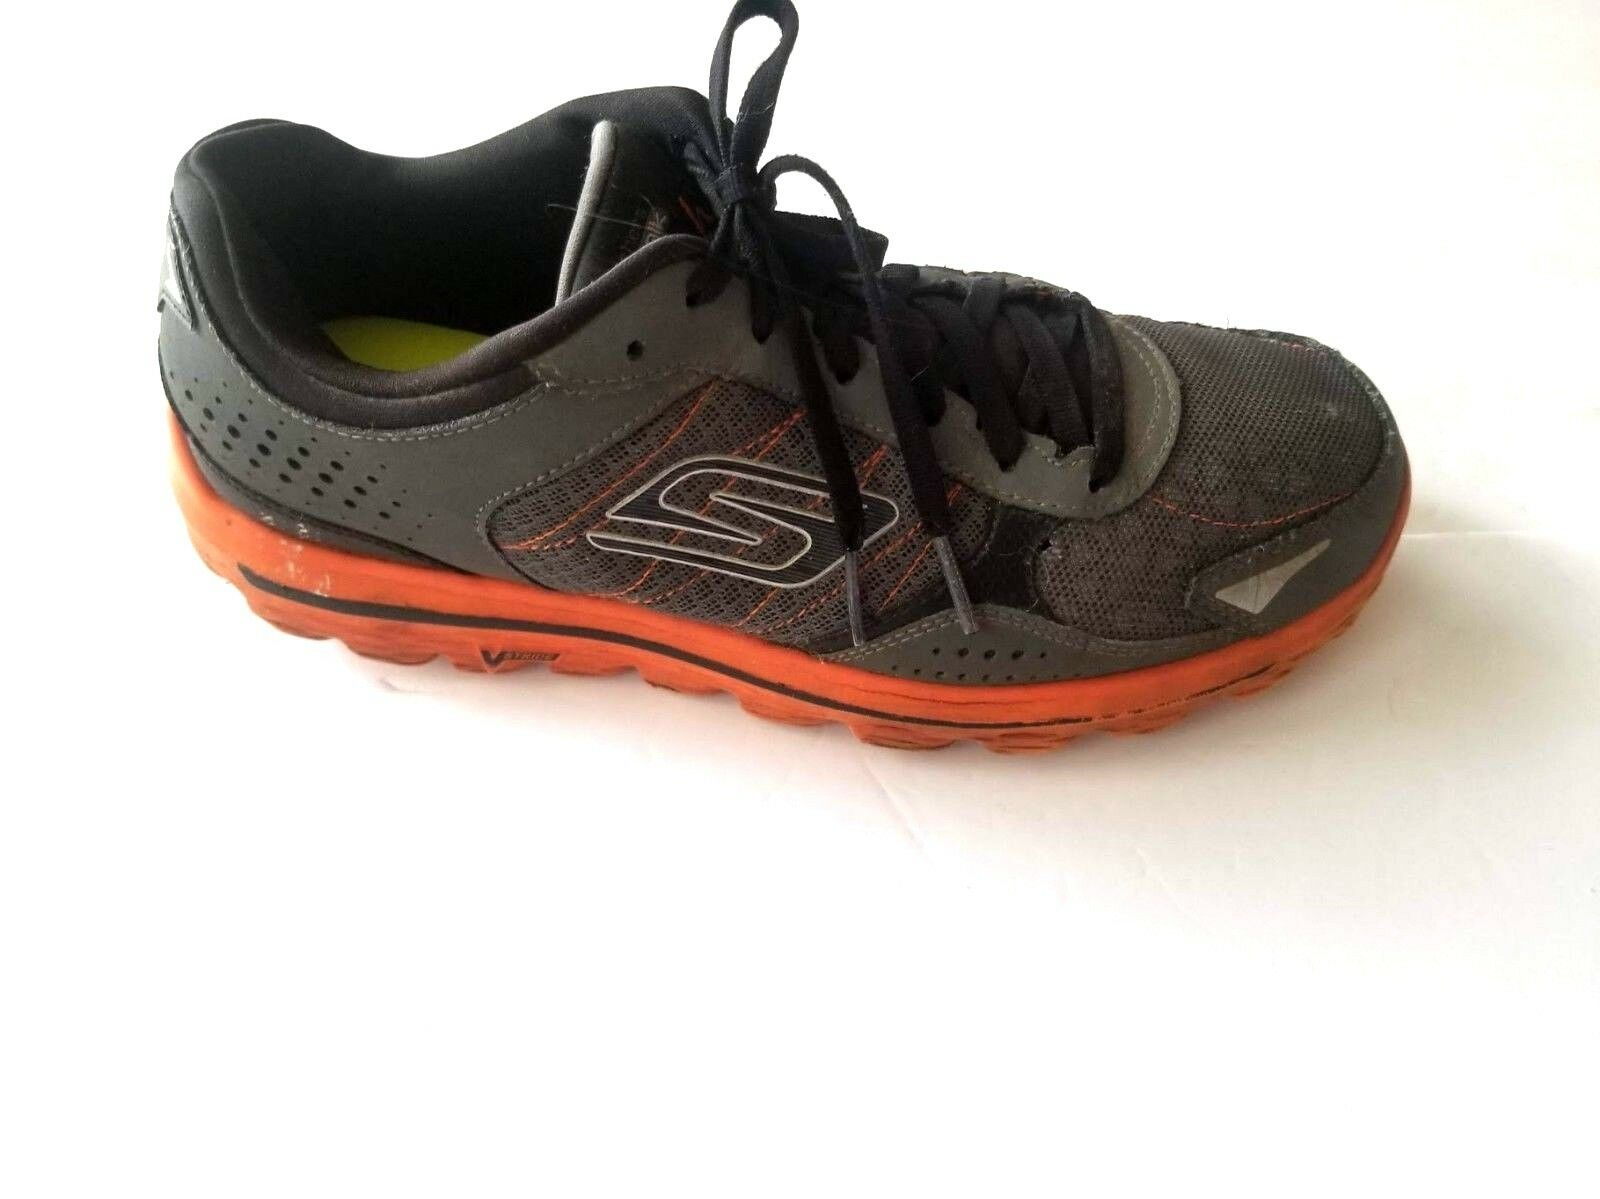 Skechers Athletic Sneaker Leather Gray Orange Mens Shoes Comfortable best-selling model of the brand